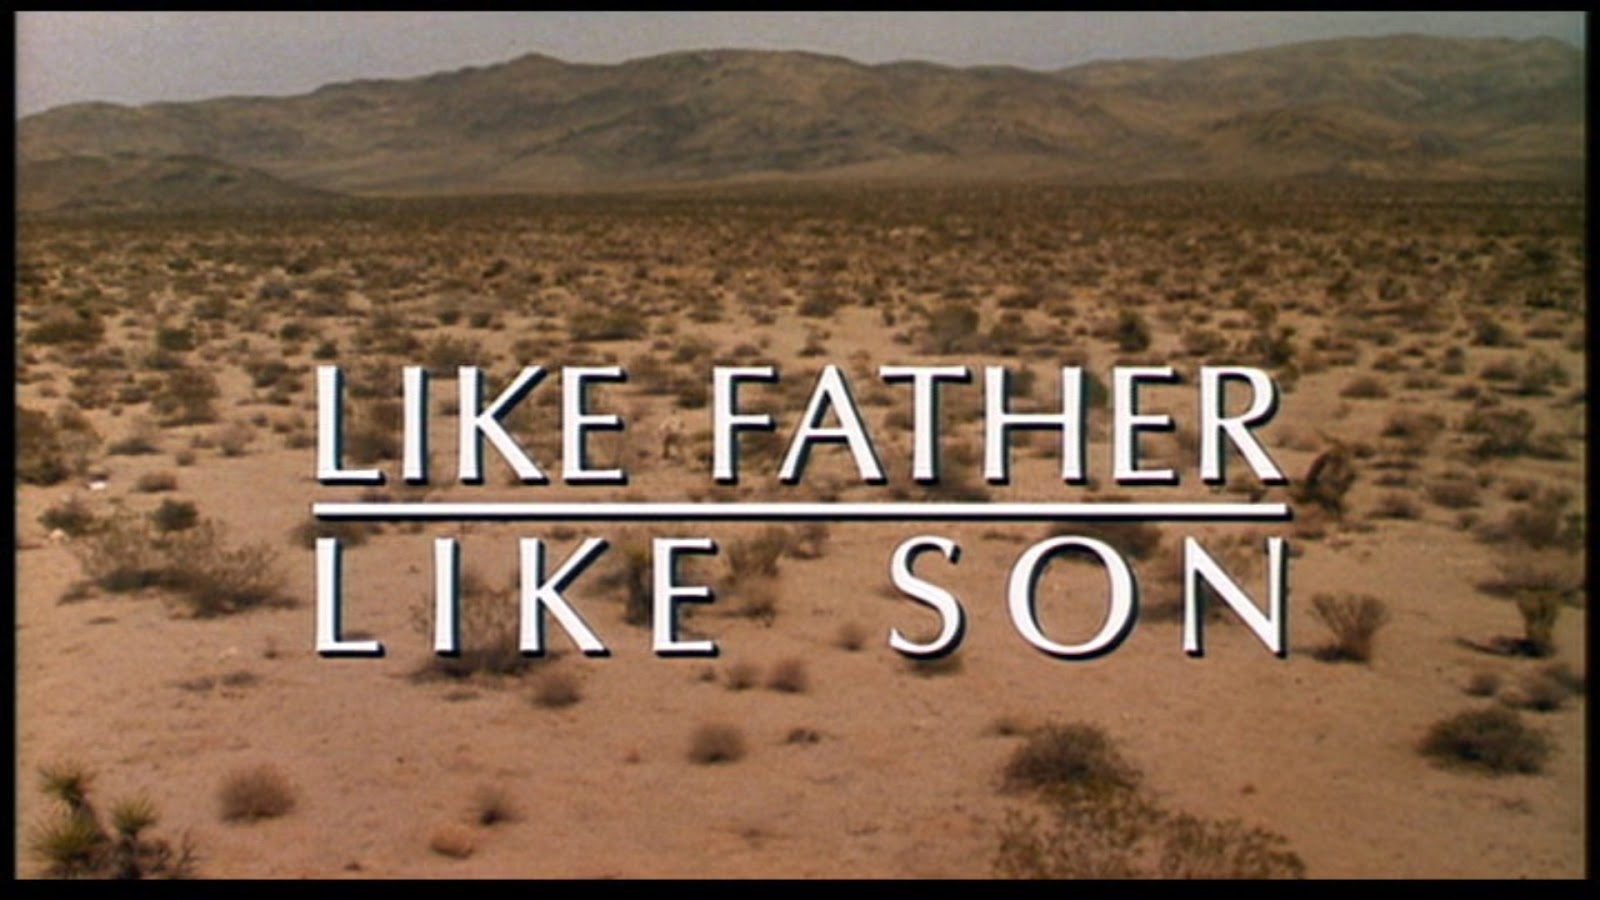 Movie Locations and More: Like Father, Like Son (1987)